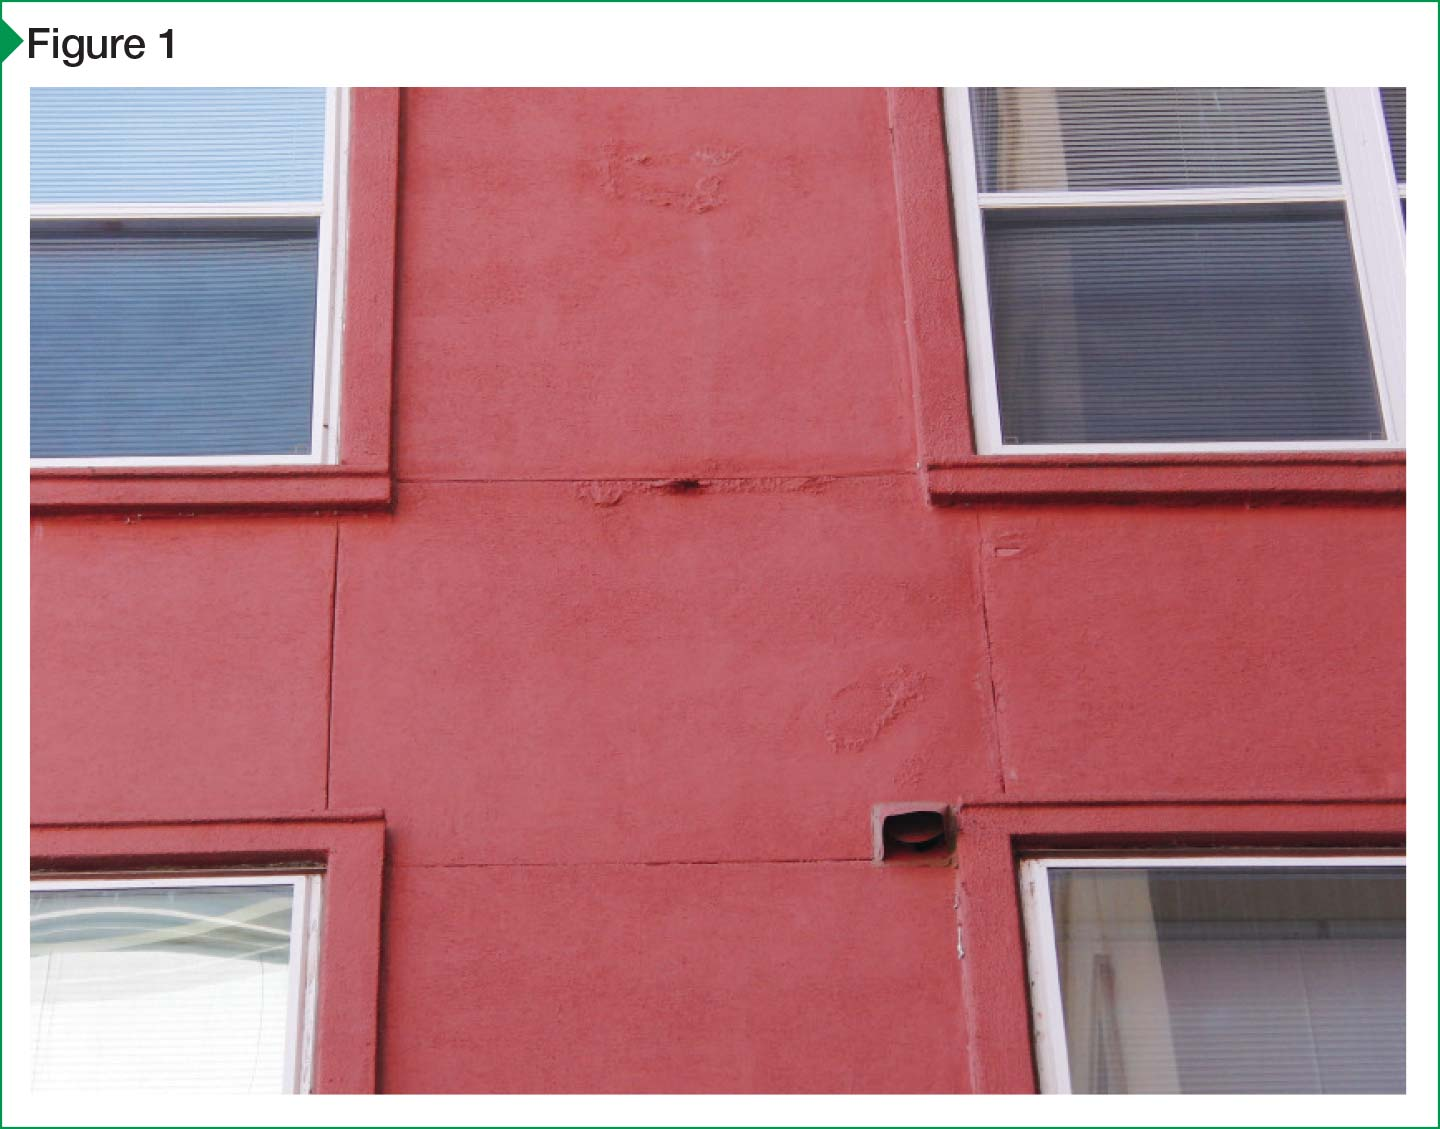 Improving stucco durability using moist-curing - Page 2 of 3 ...